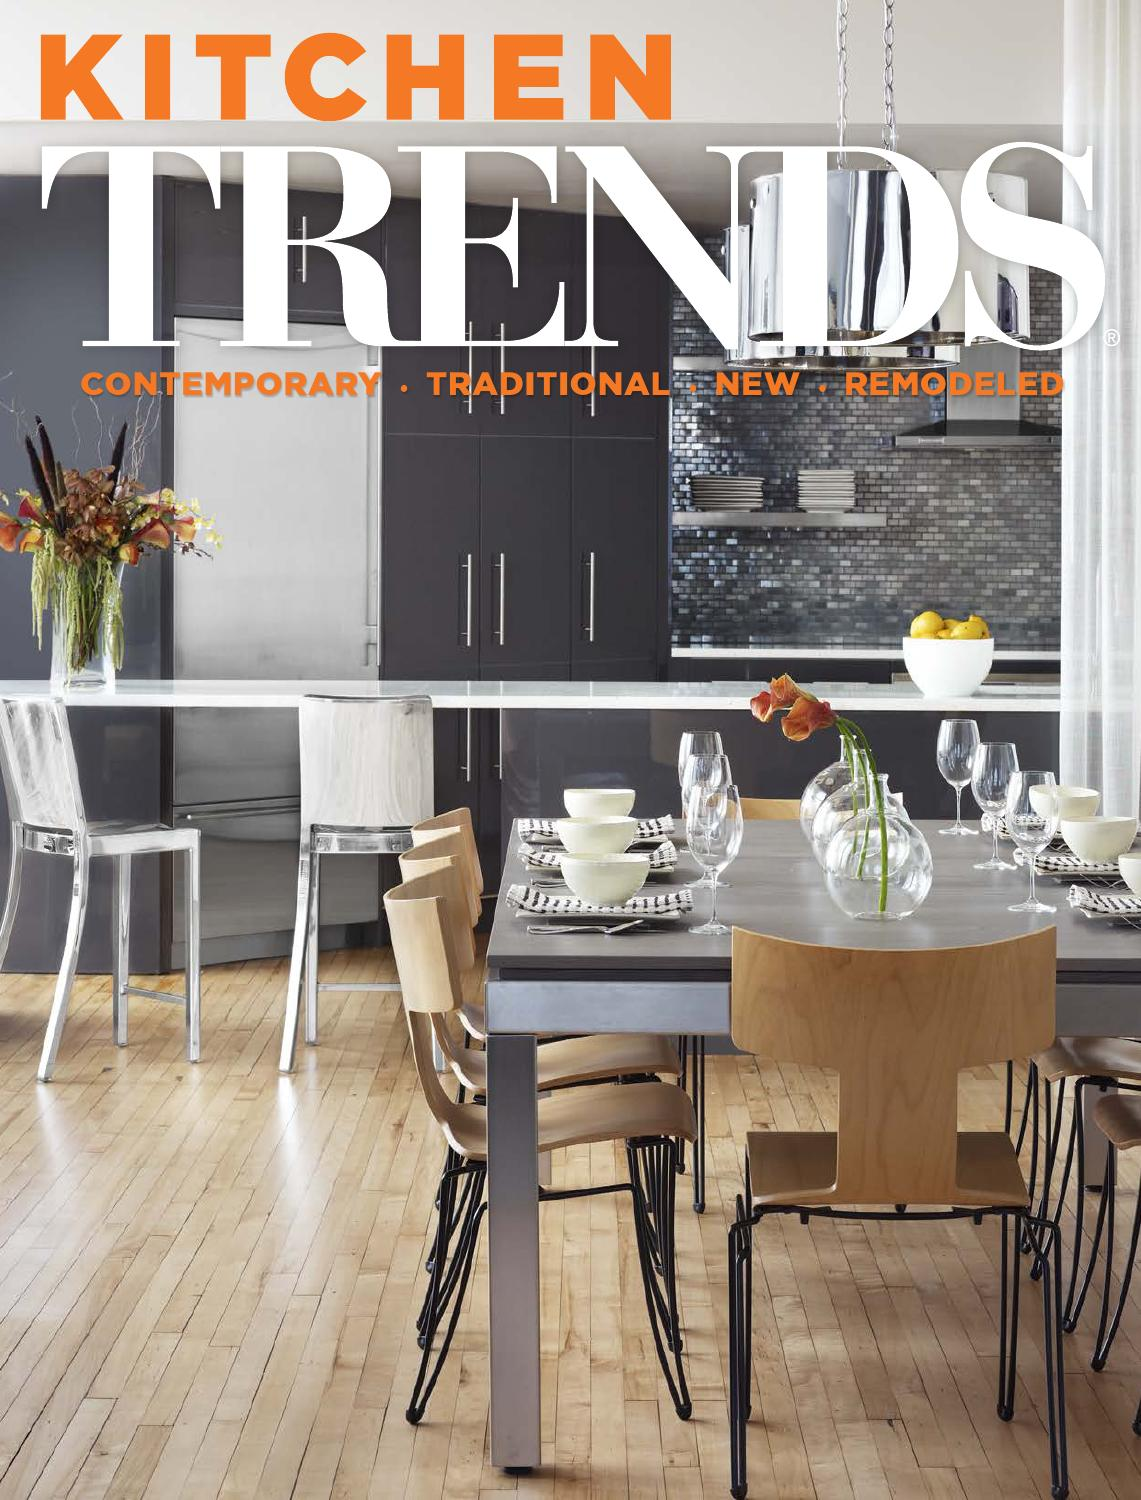 Kitchen trends usa vol by trendsideas issuu